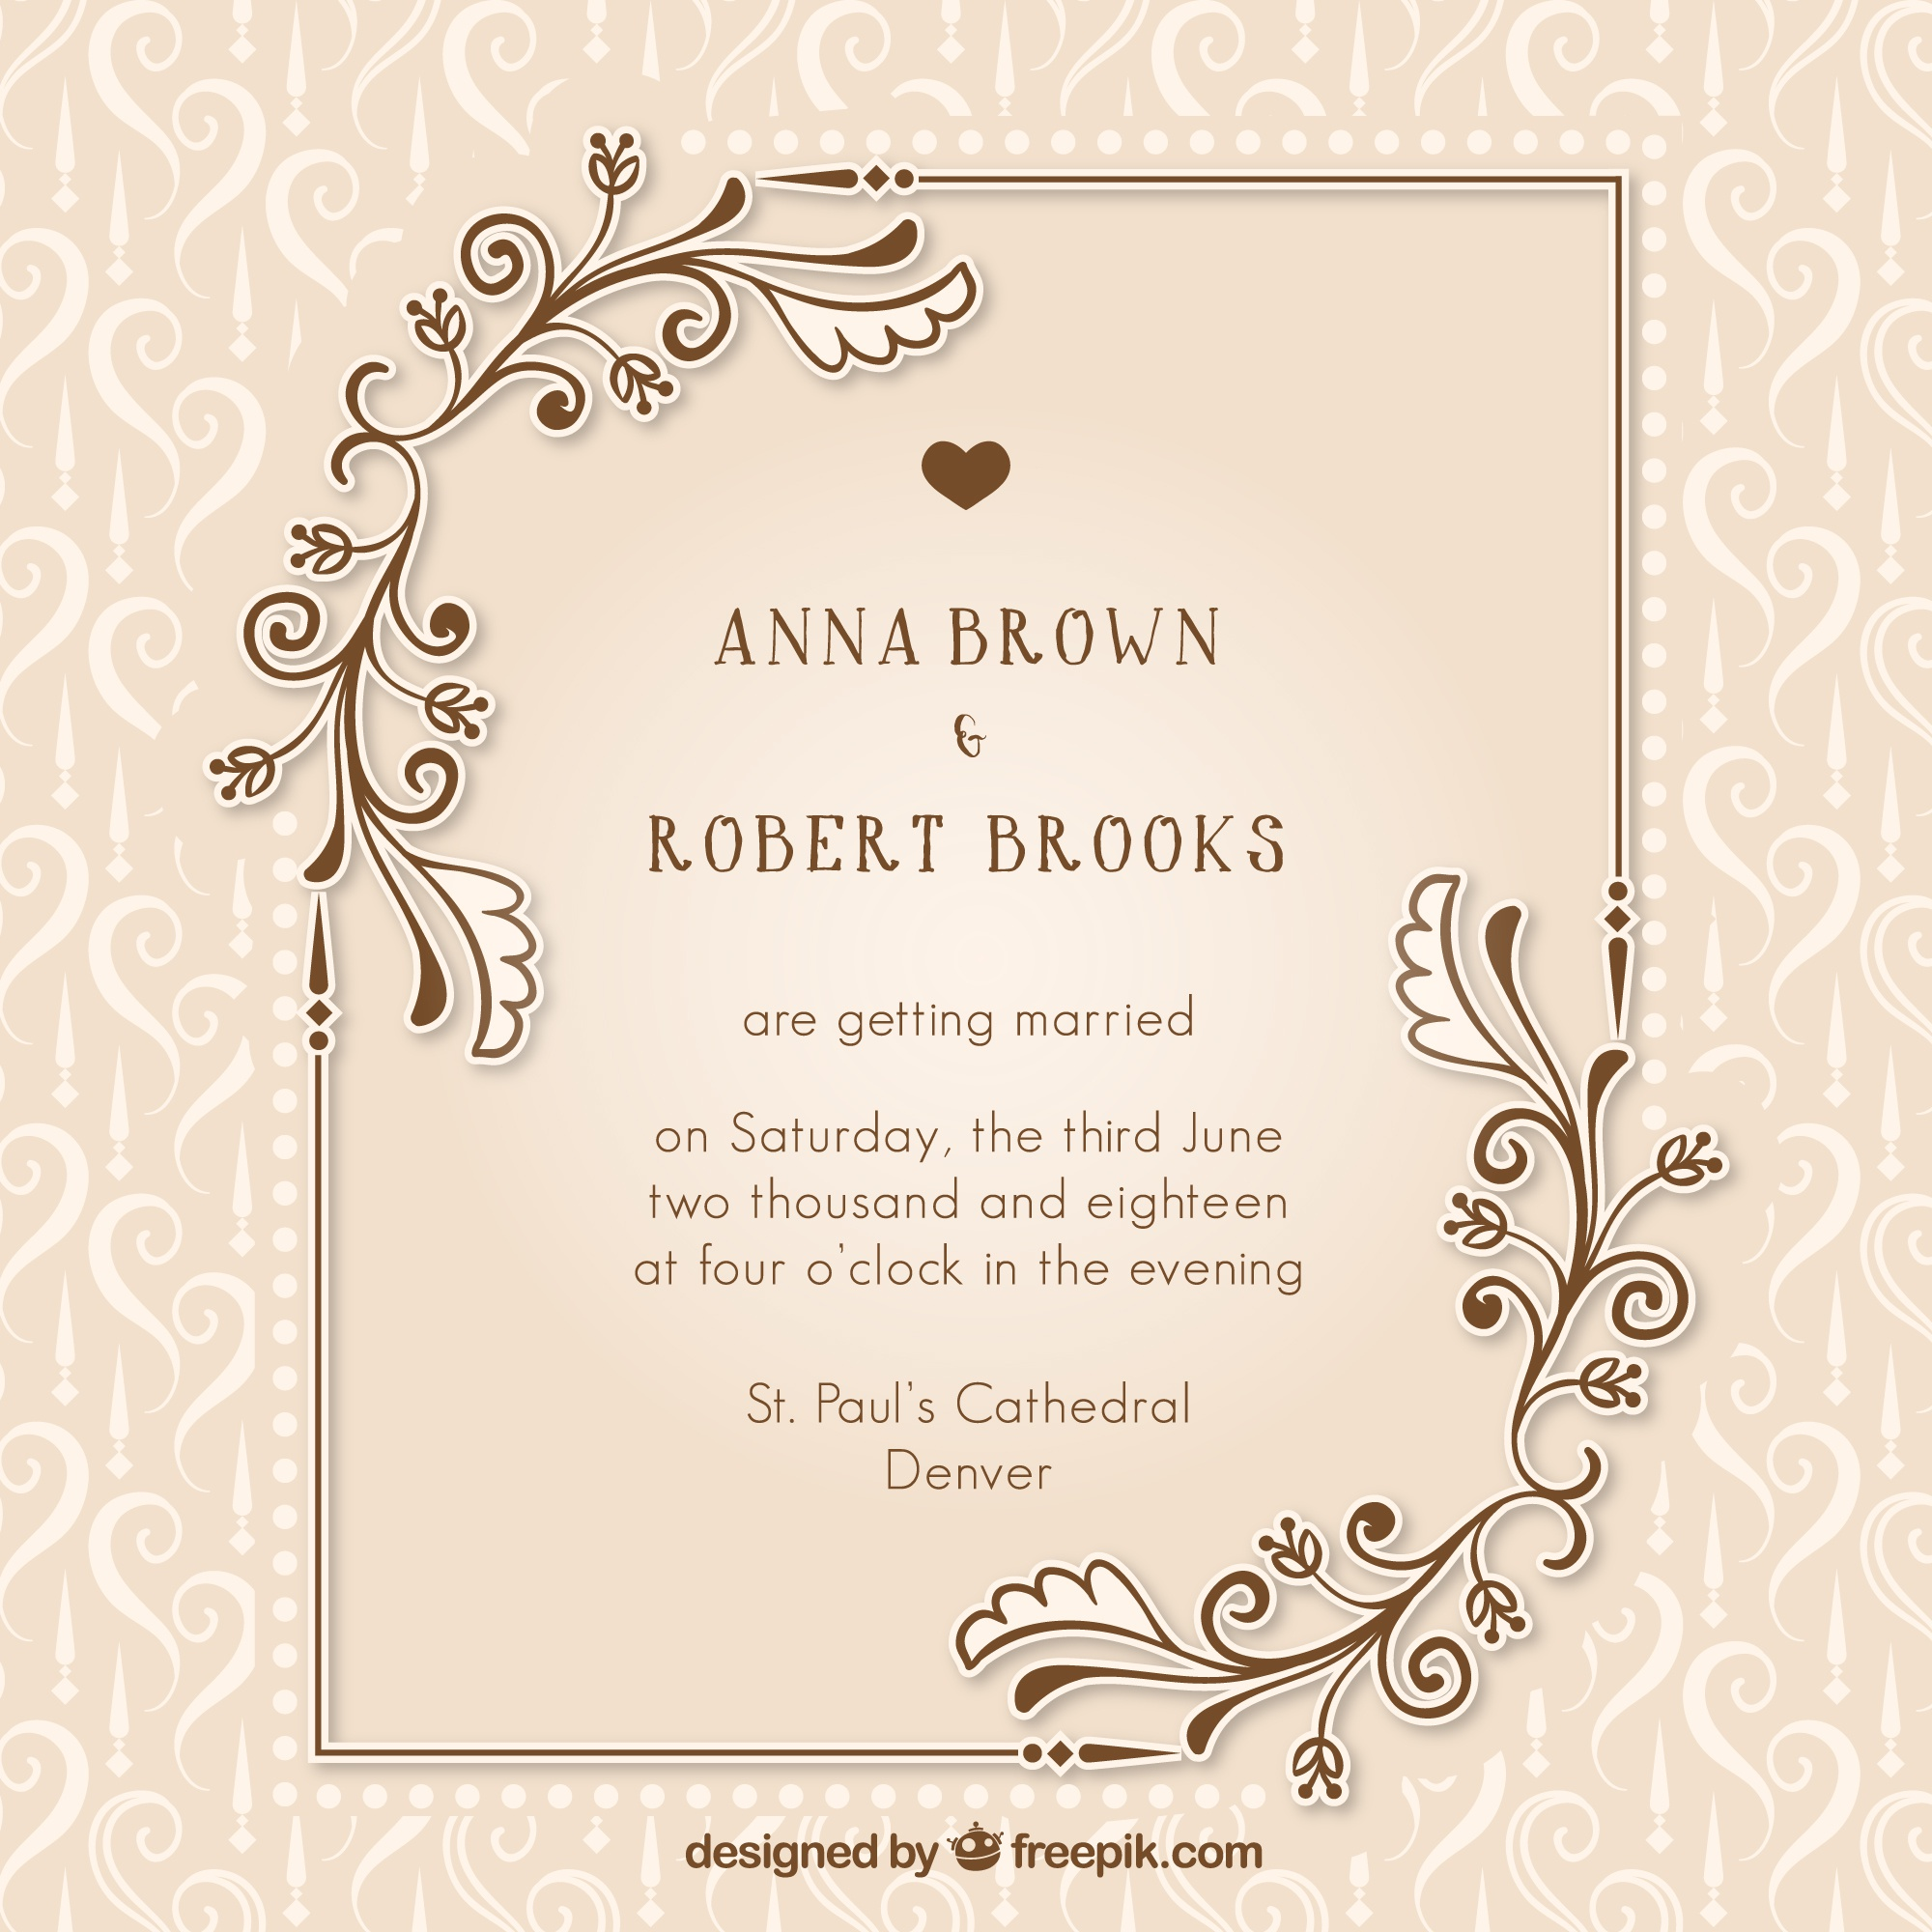 Vintage wedding invitation with floral details